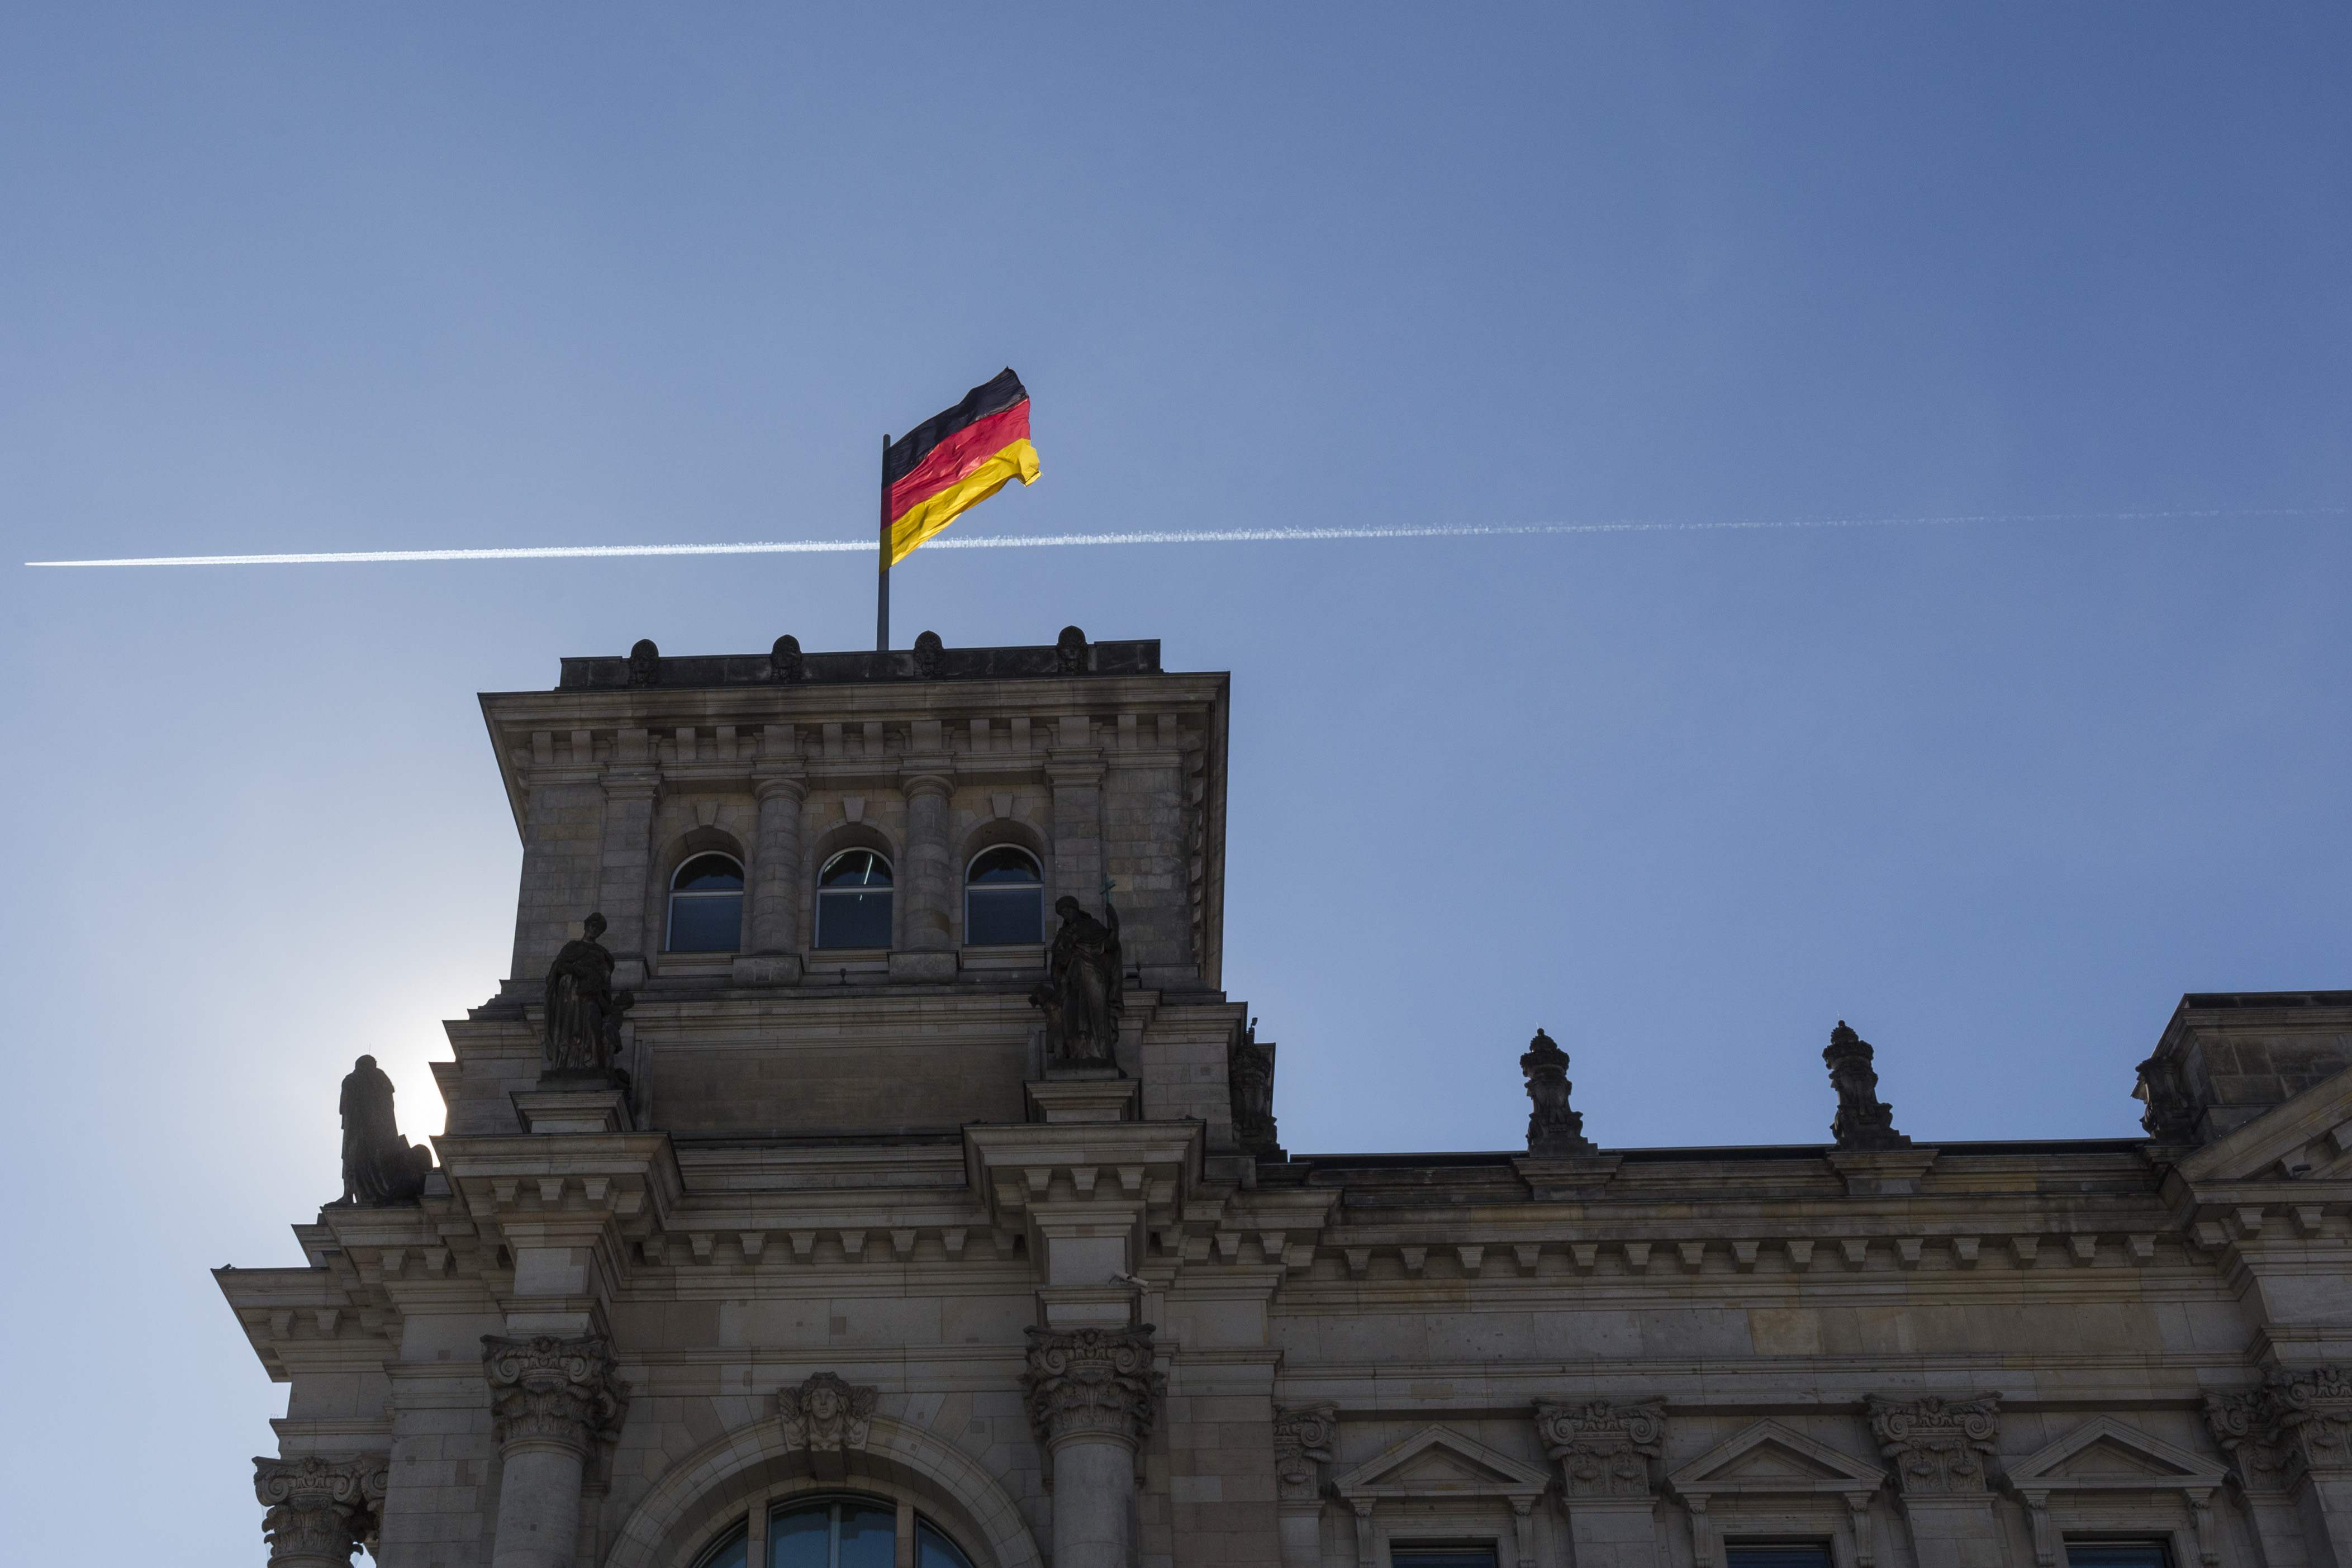 The German Parliament building with flag on February 24, 2014 in Berlin, Germany.